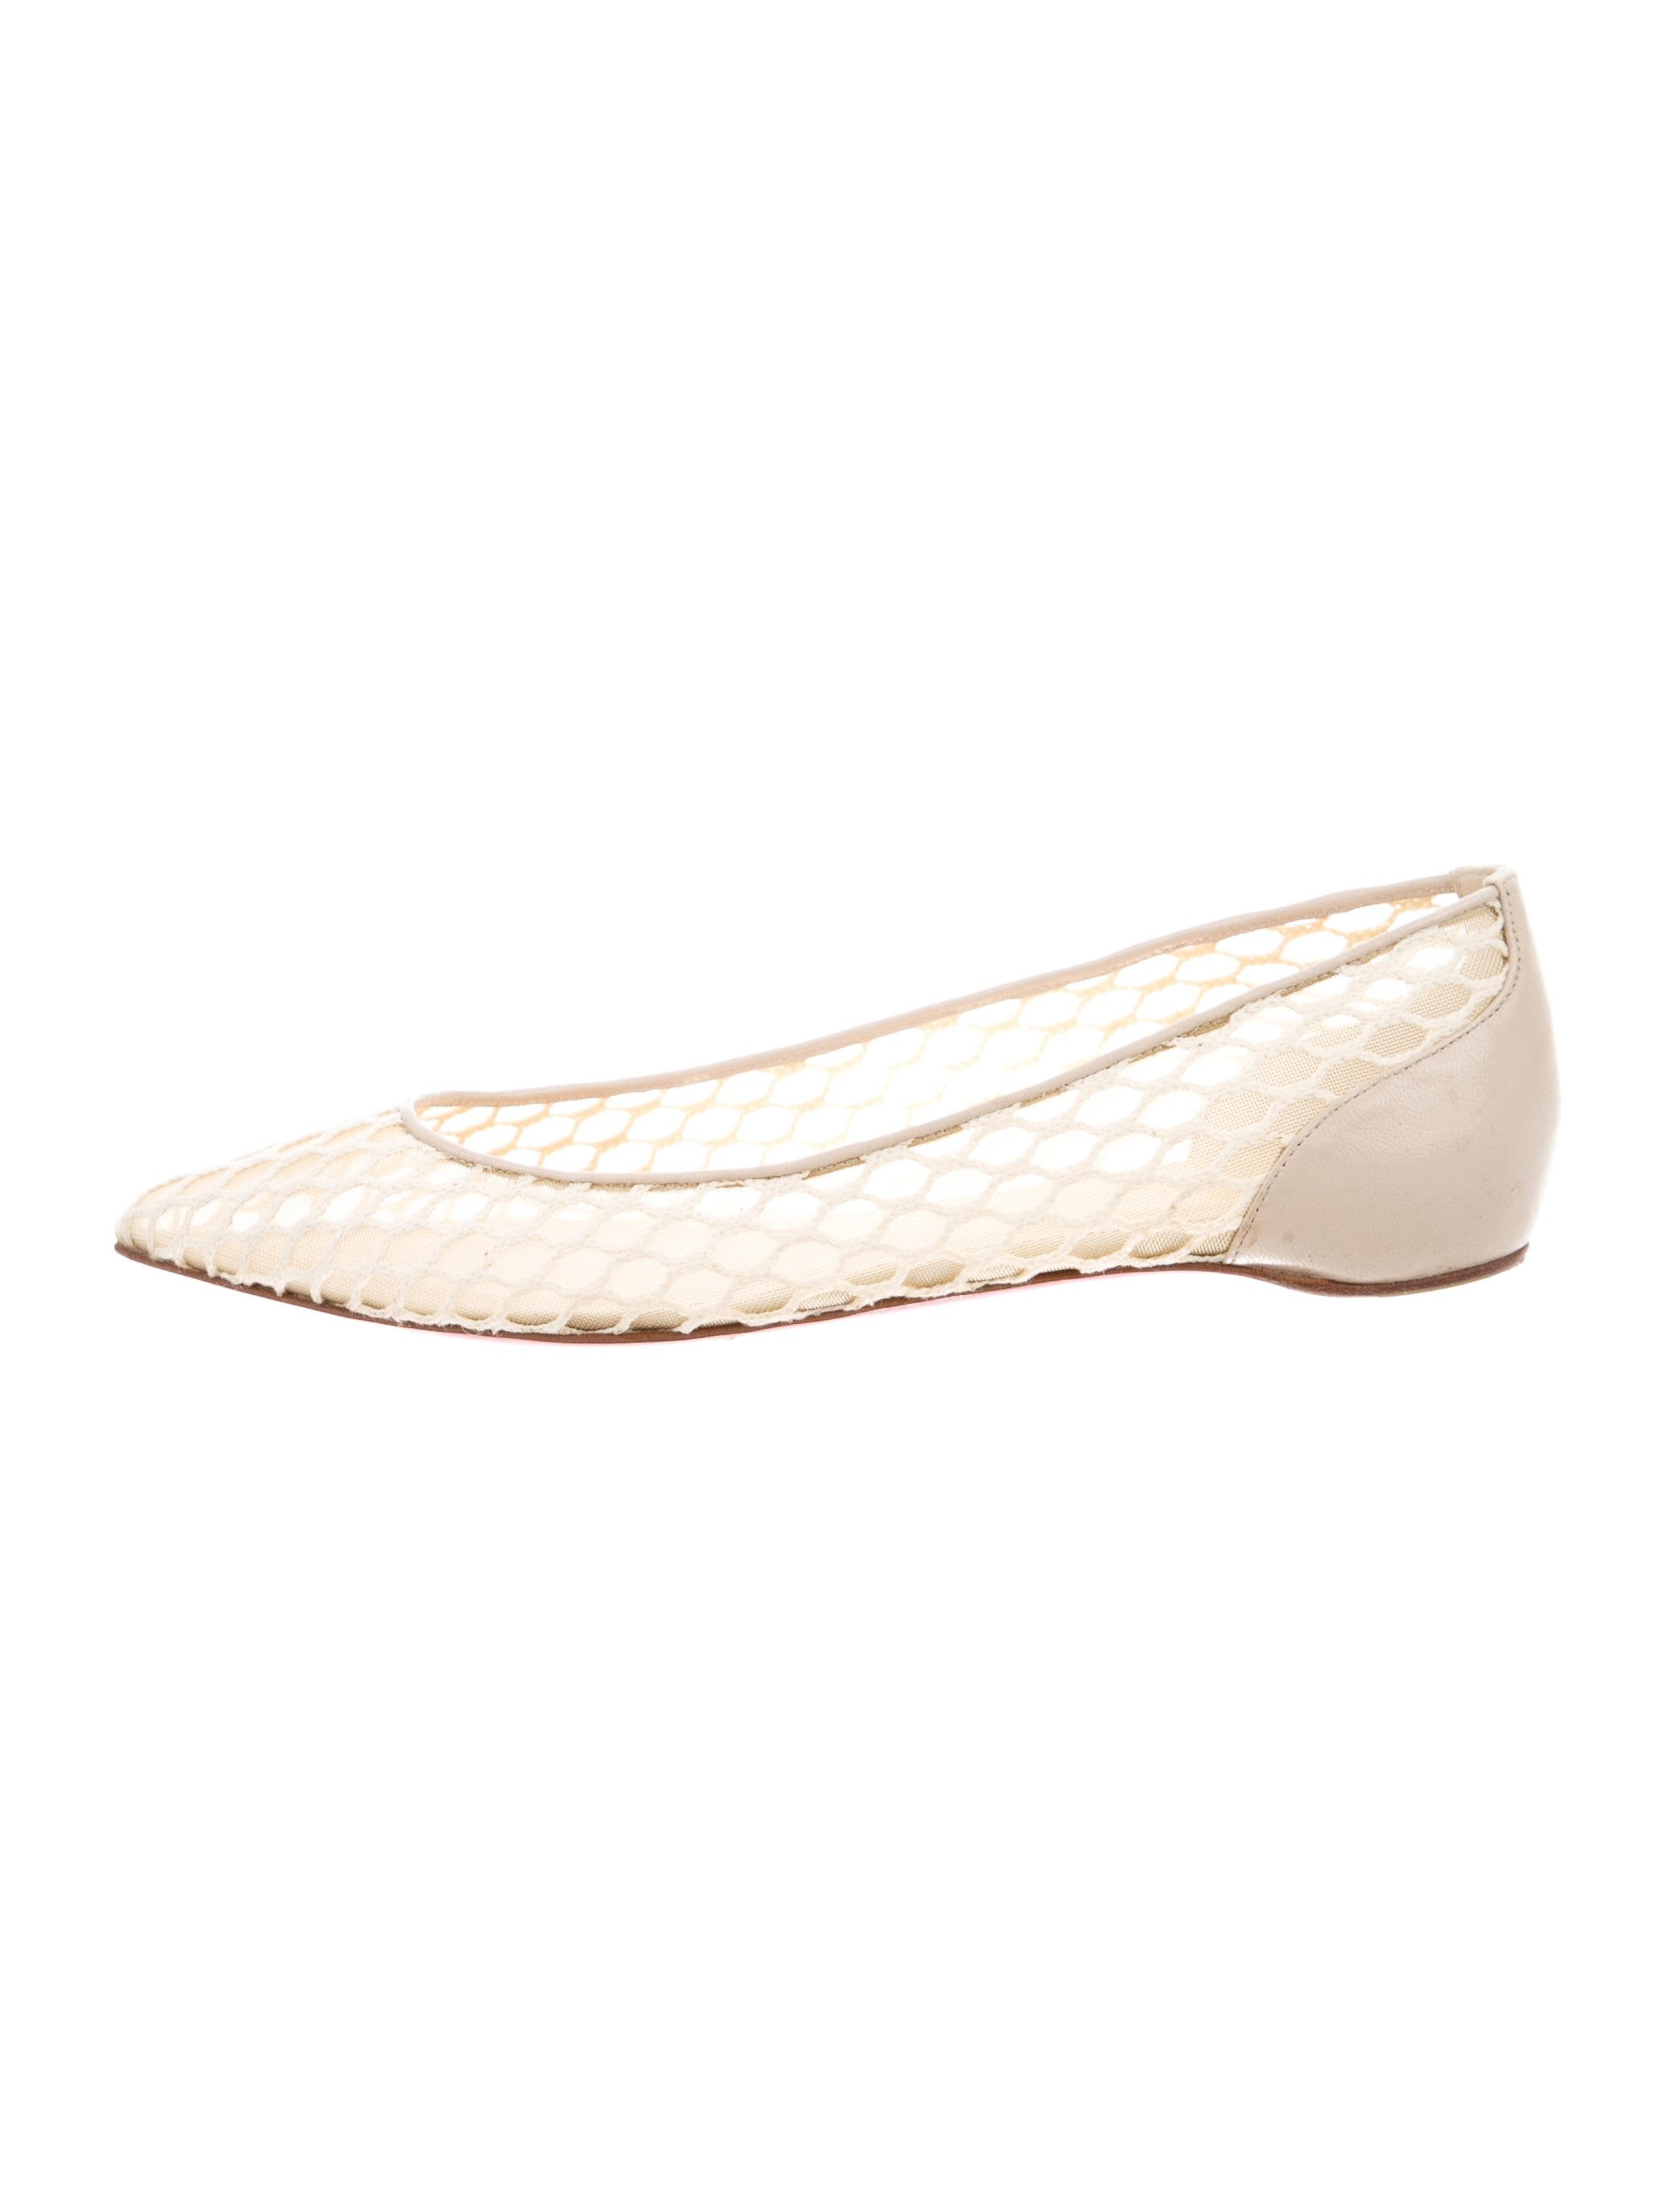 6924658725e Christian Louboutin Pigaresille Mesh Flats - Shoes - CHT77287